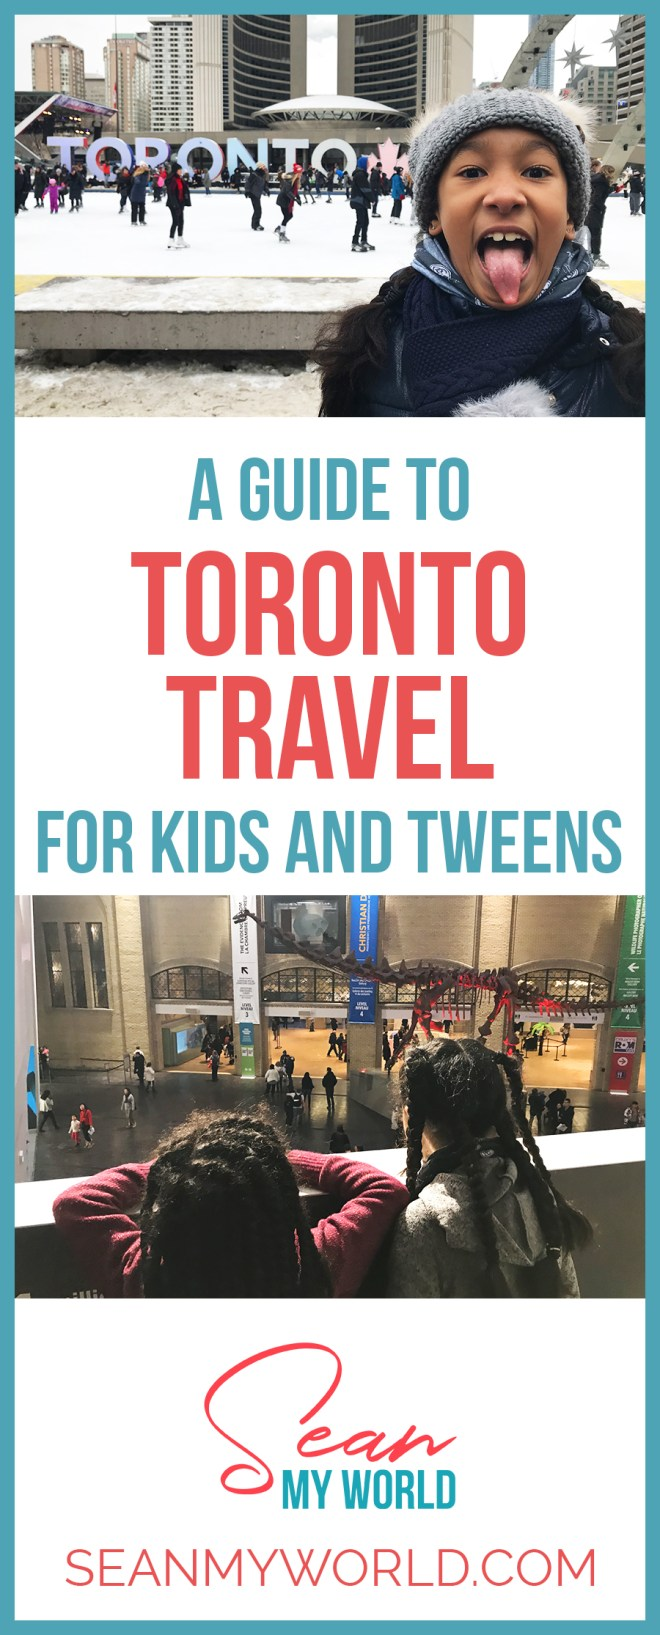 I'm excited to share with you my Toronto travel guide! If you're looking for a Toronto travel guide that's good for tweens, check it out.